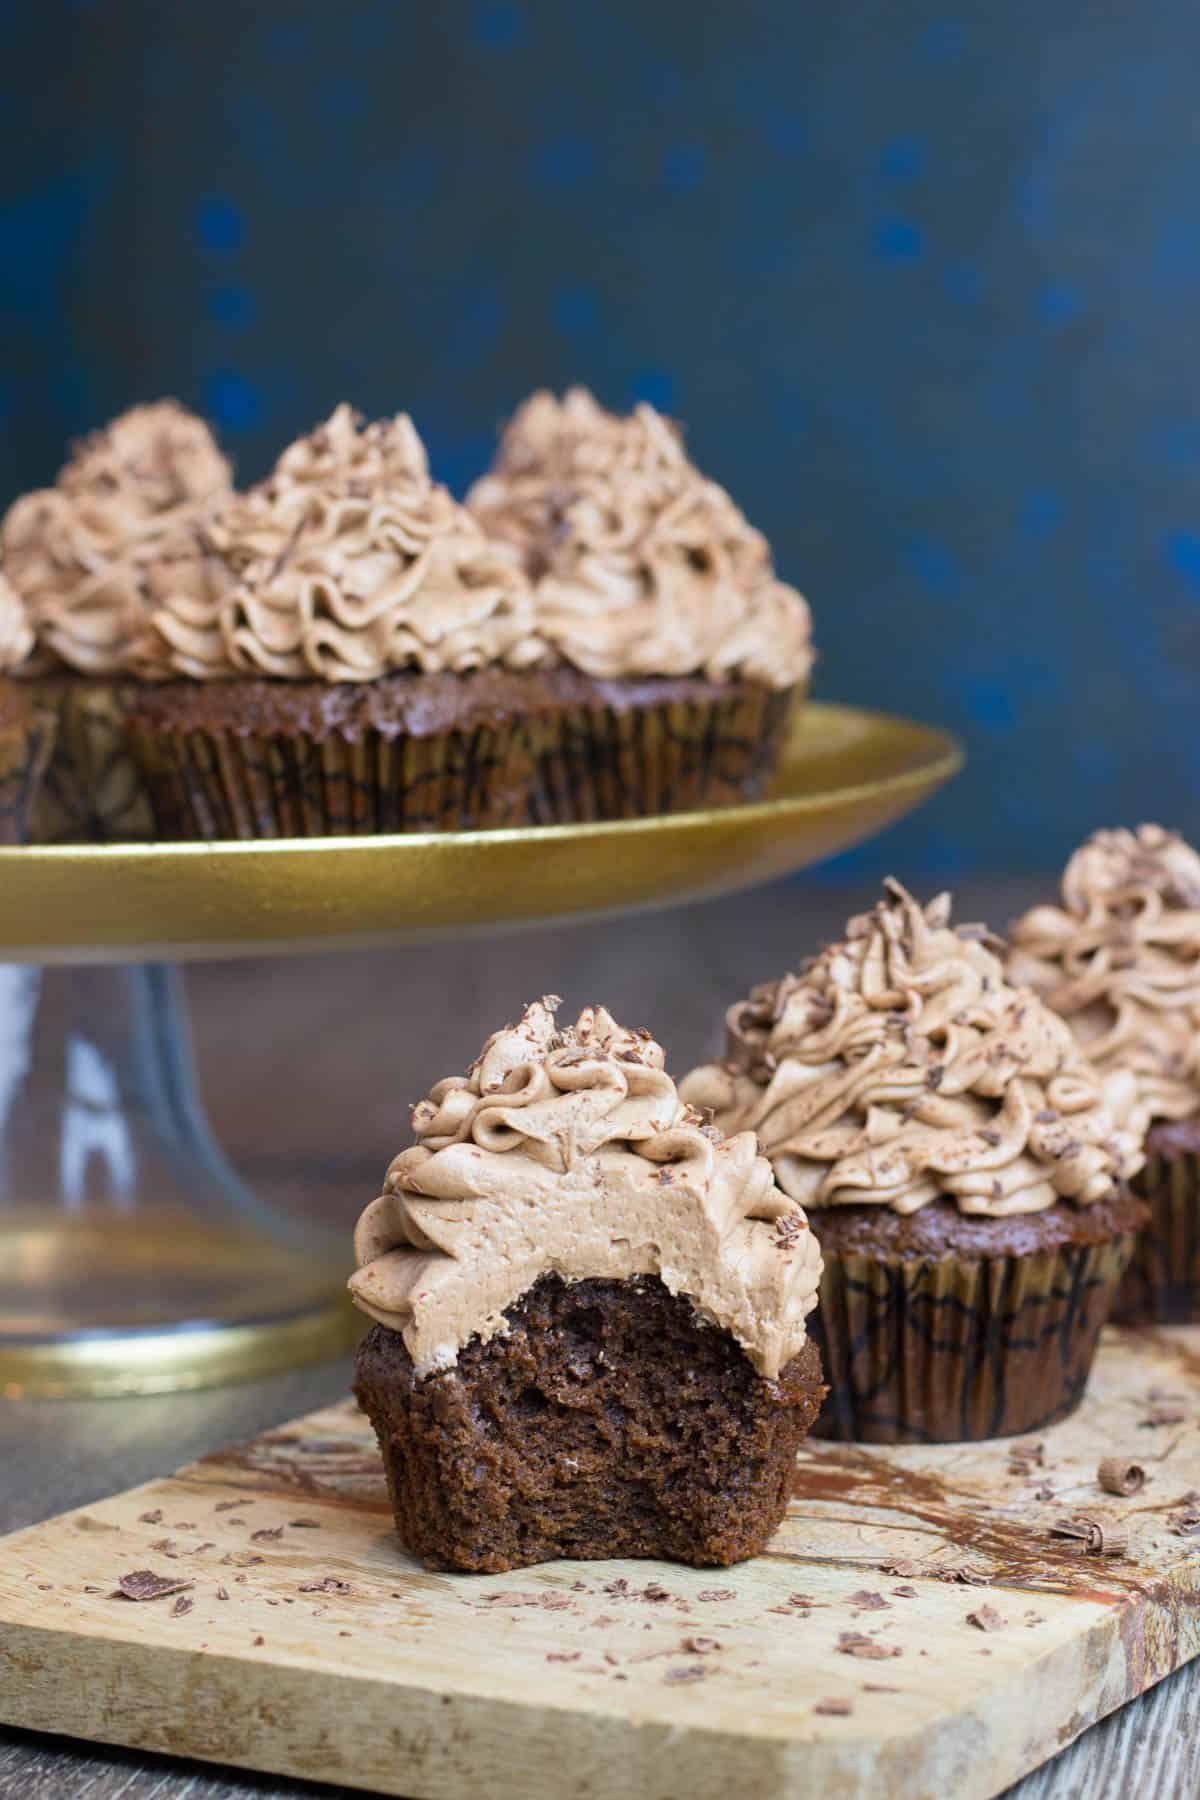 Kahlua Cupcakes toped with chocolate frosting on board.